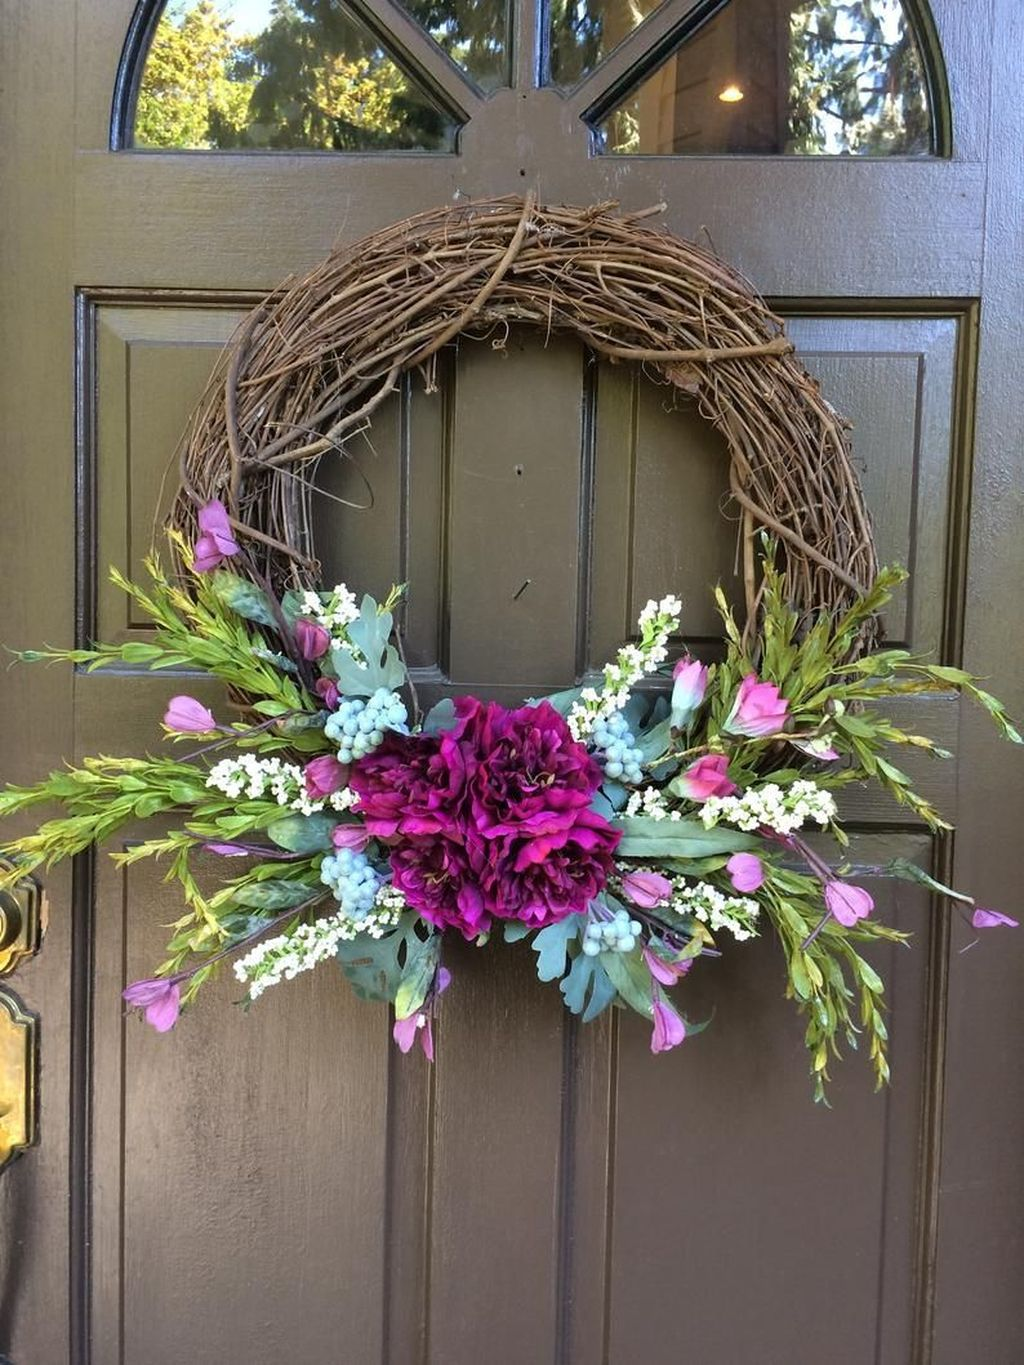 Inspiring Summer Wreath Design Ideas You Should Copy 18